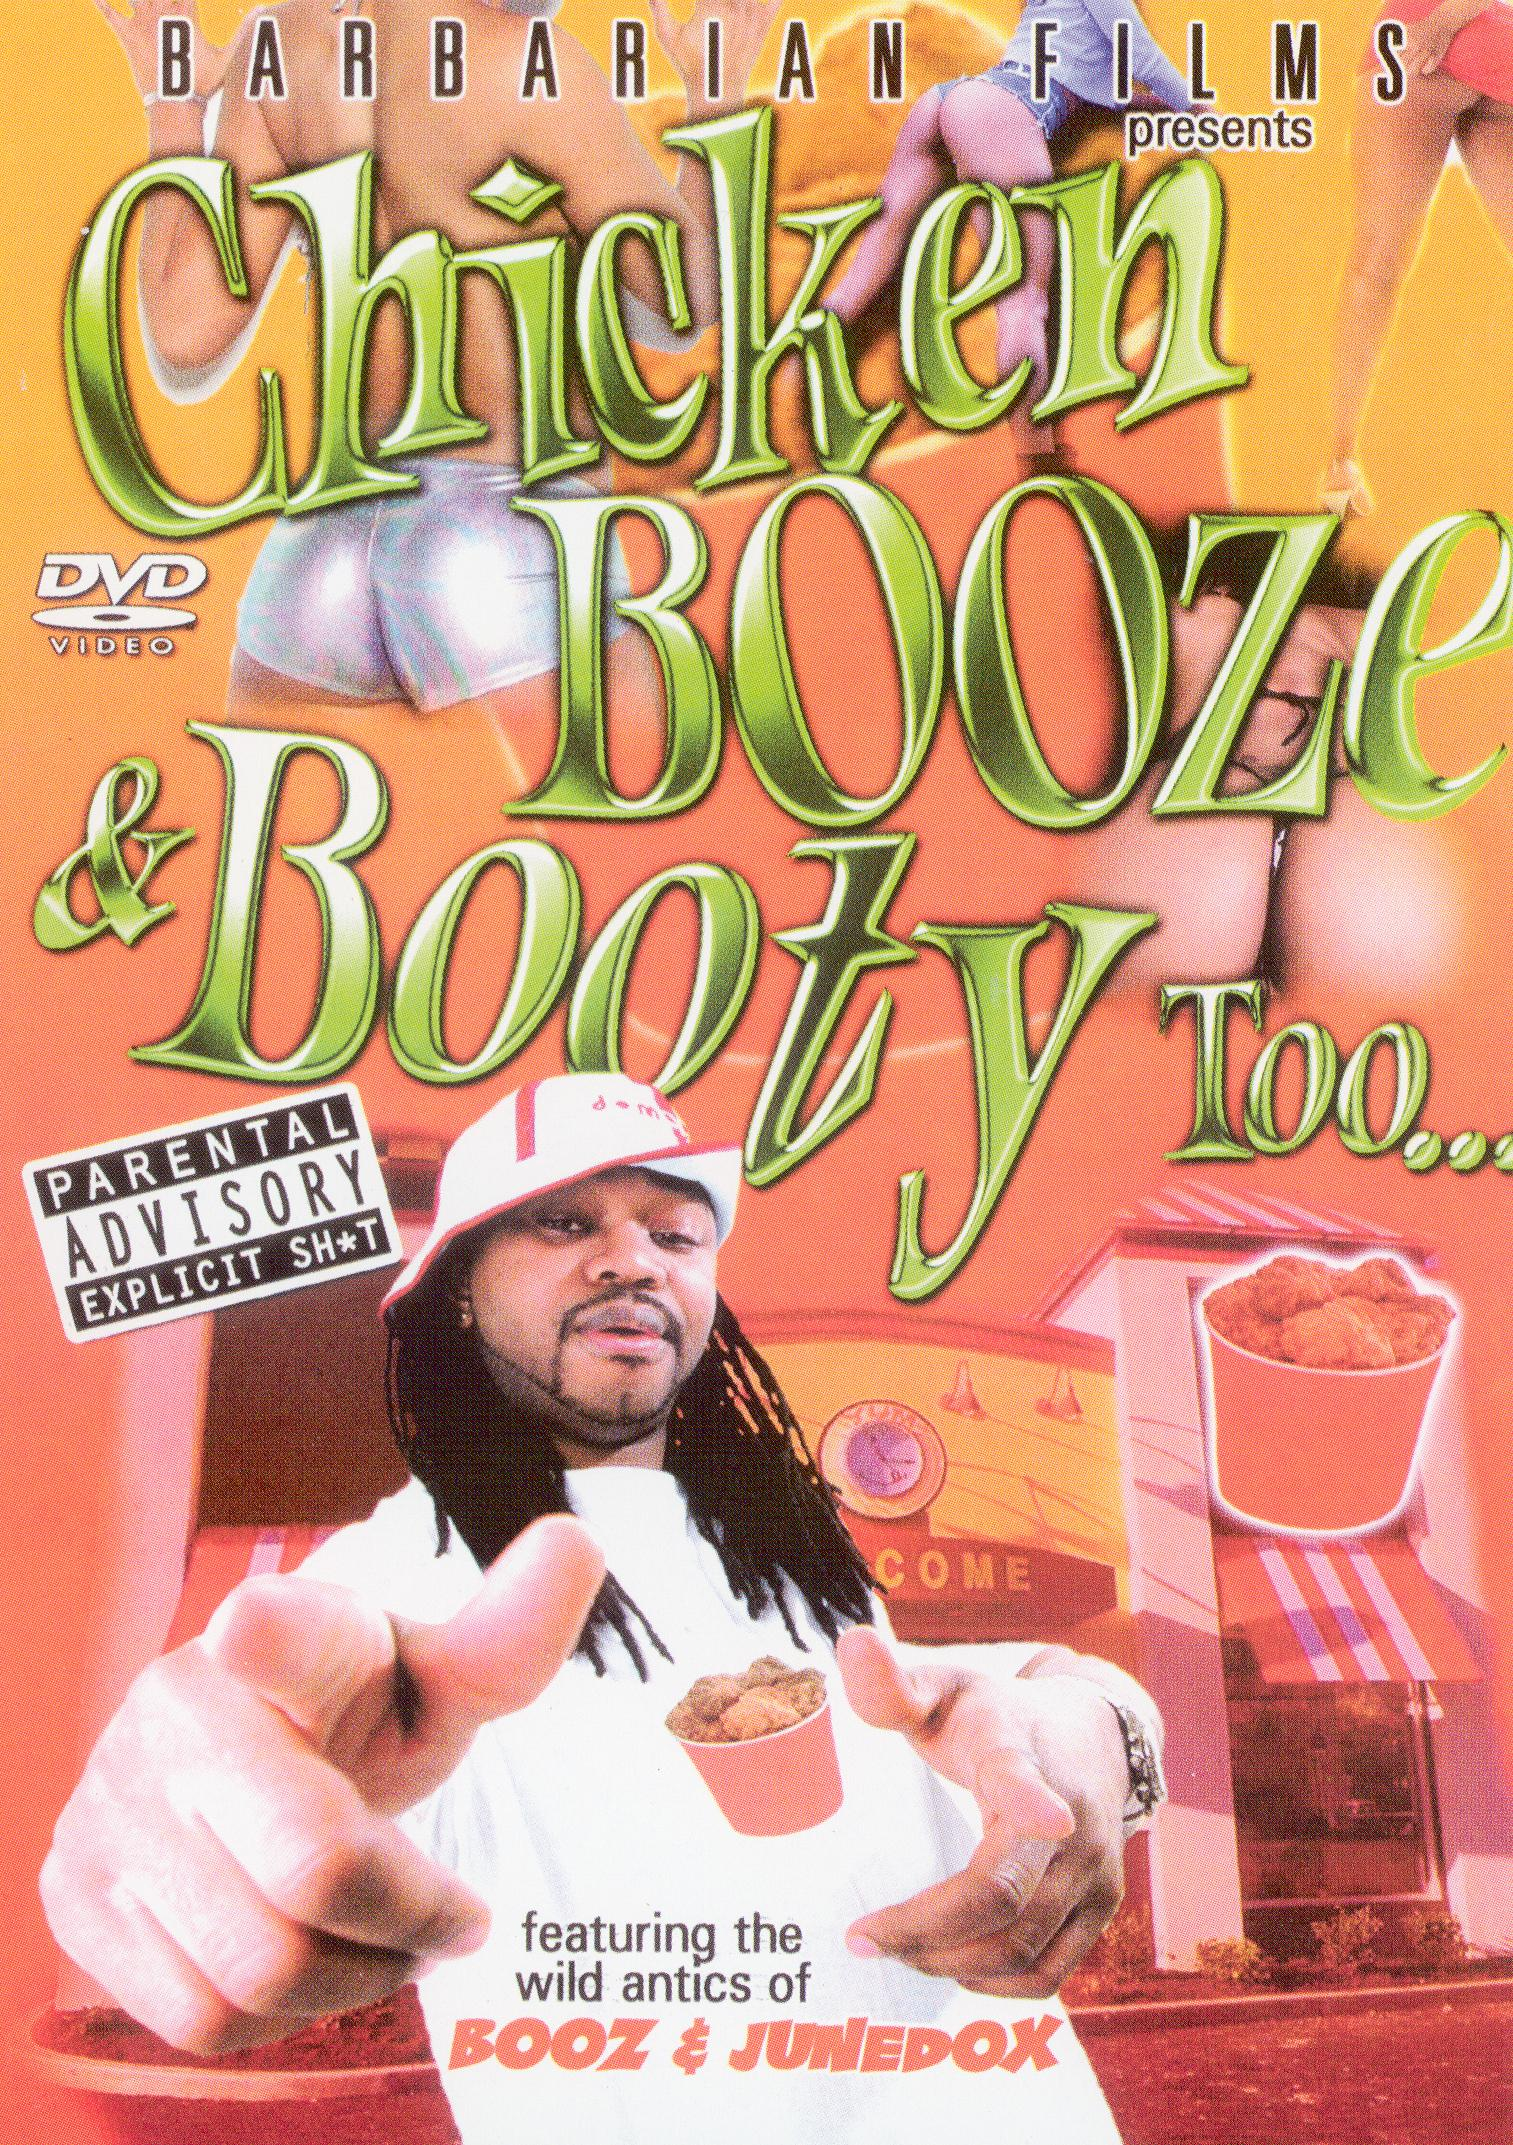 Chicken, Booze and Booty, Vol. 2